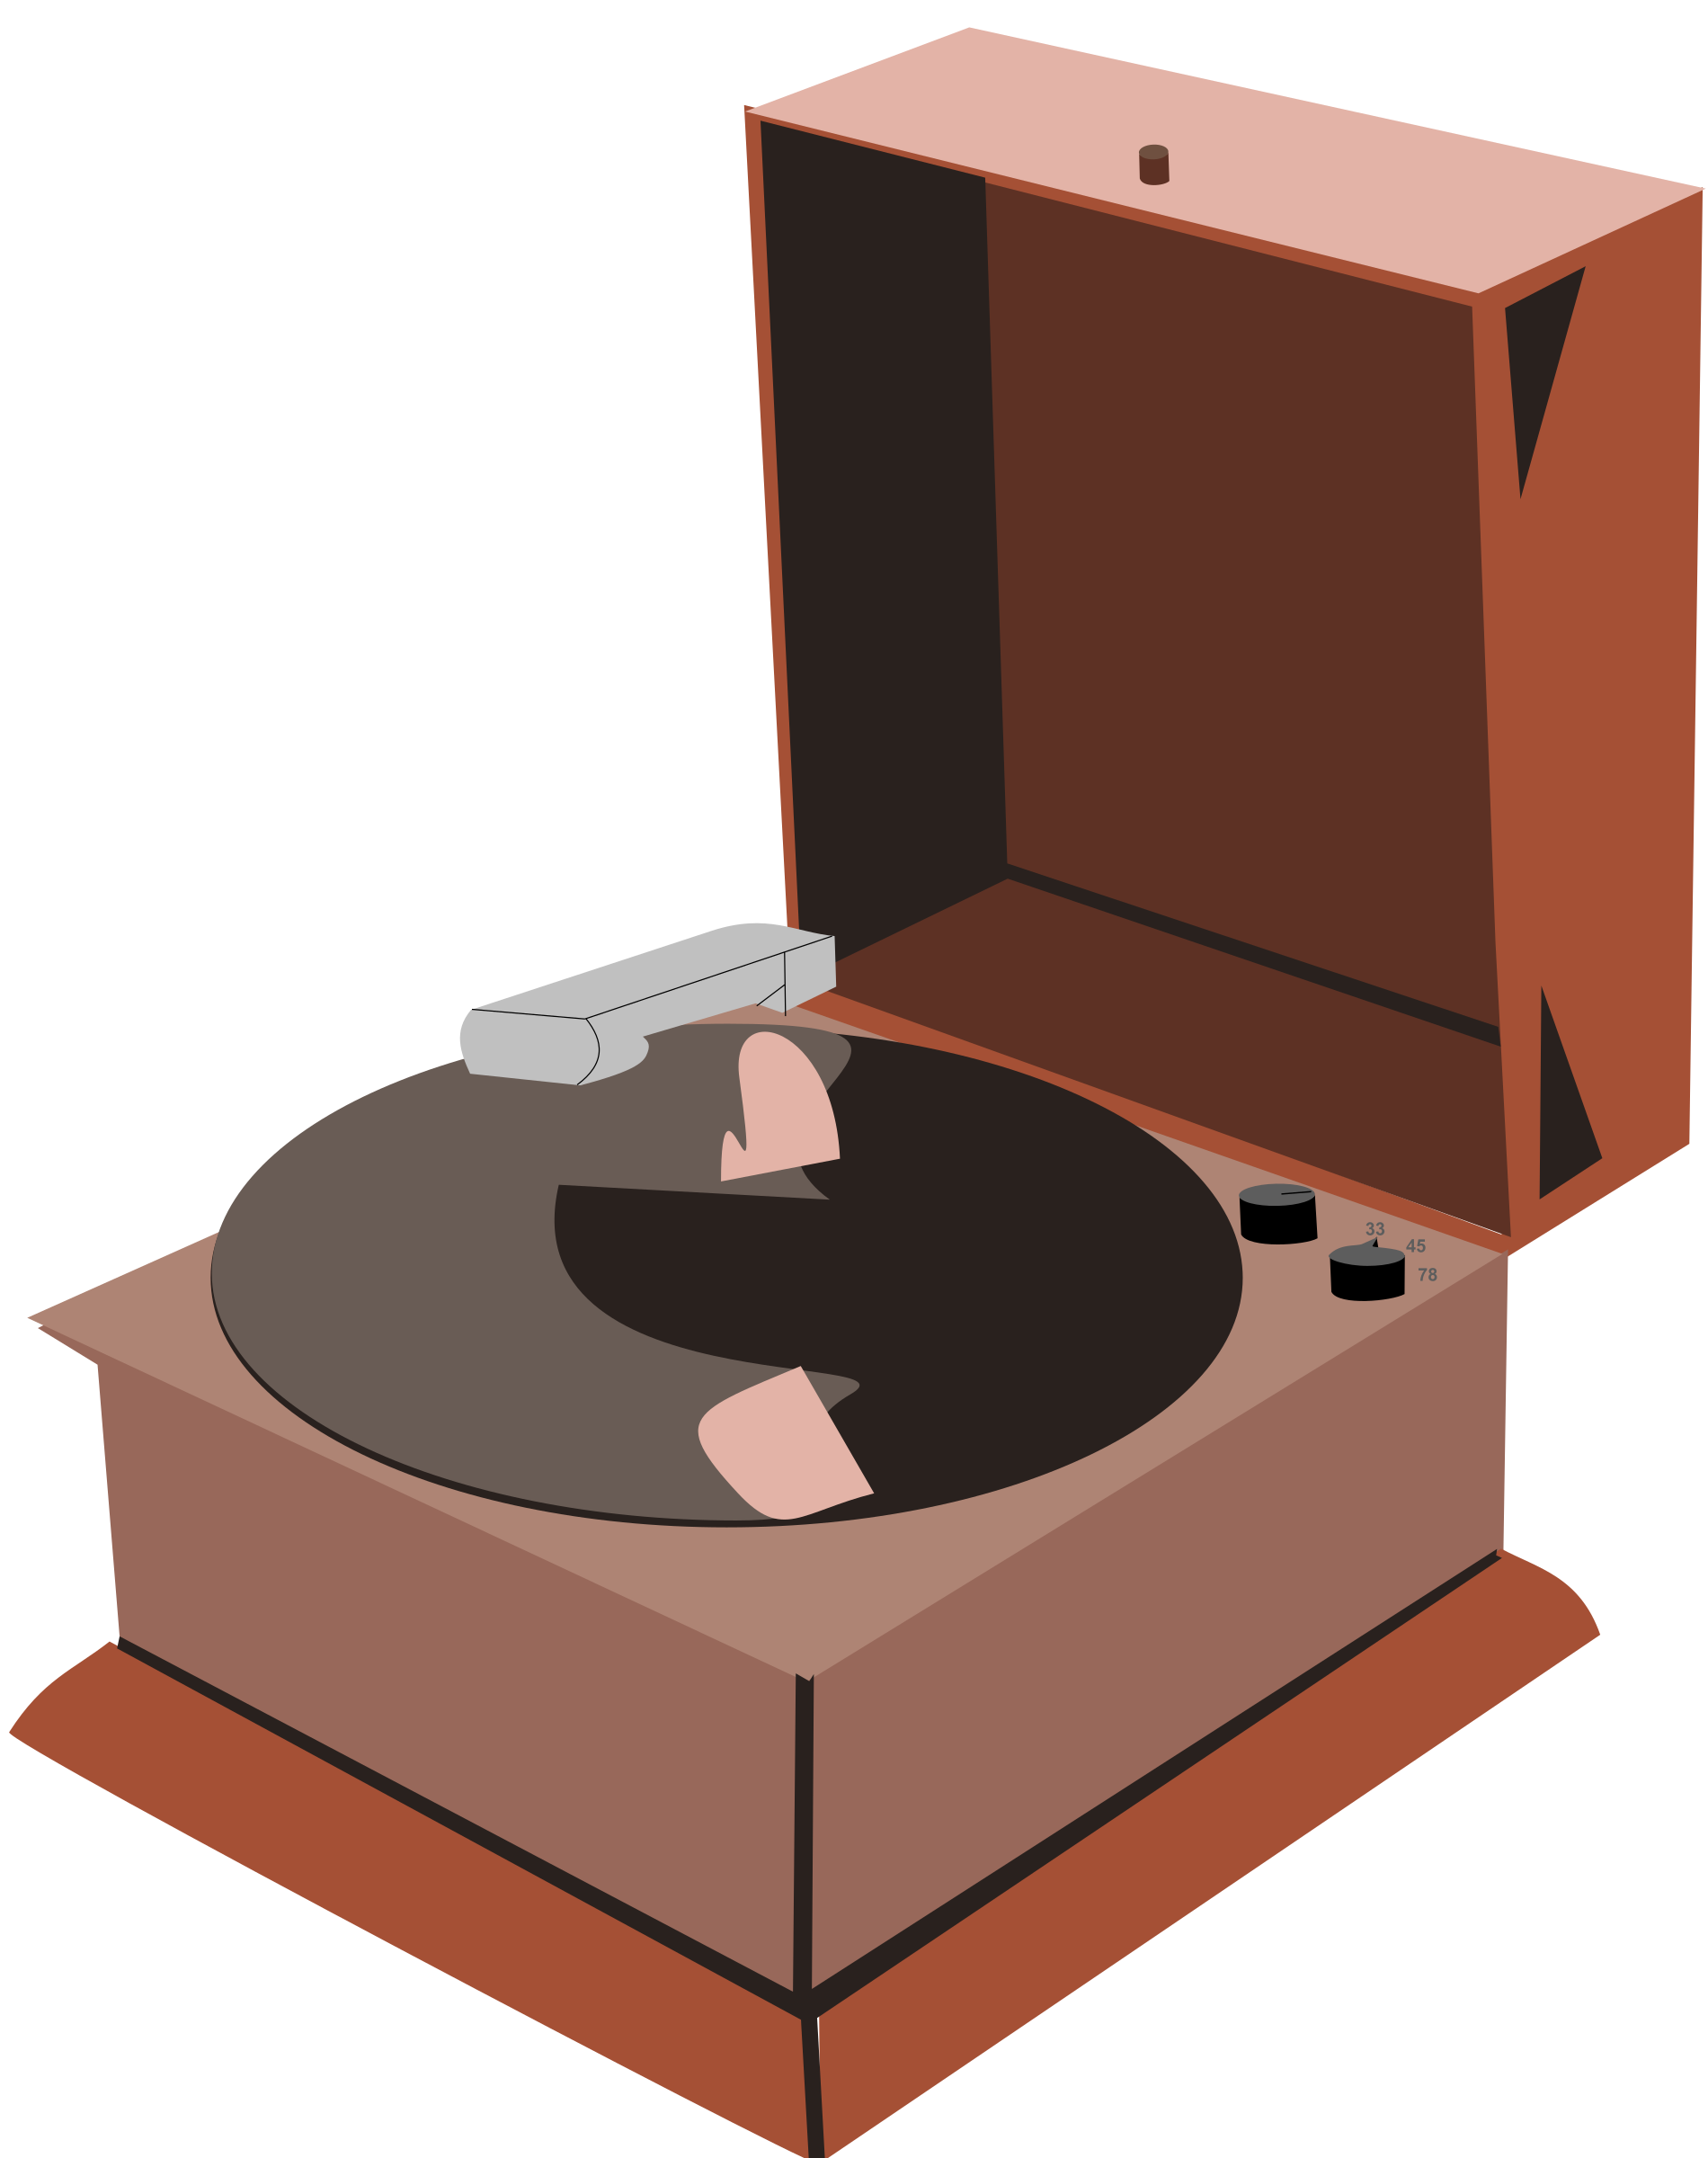 Phonograph Player by Rfc1394